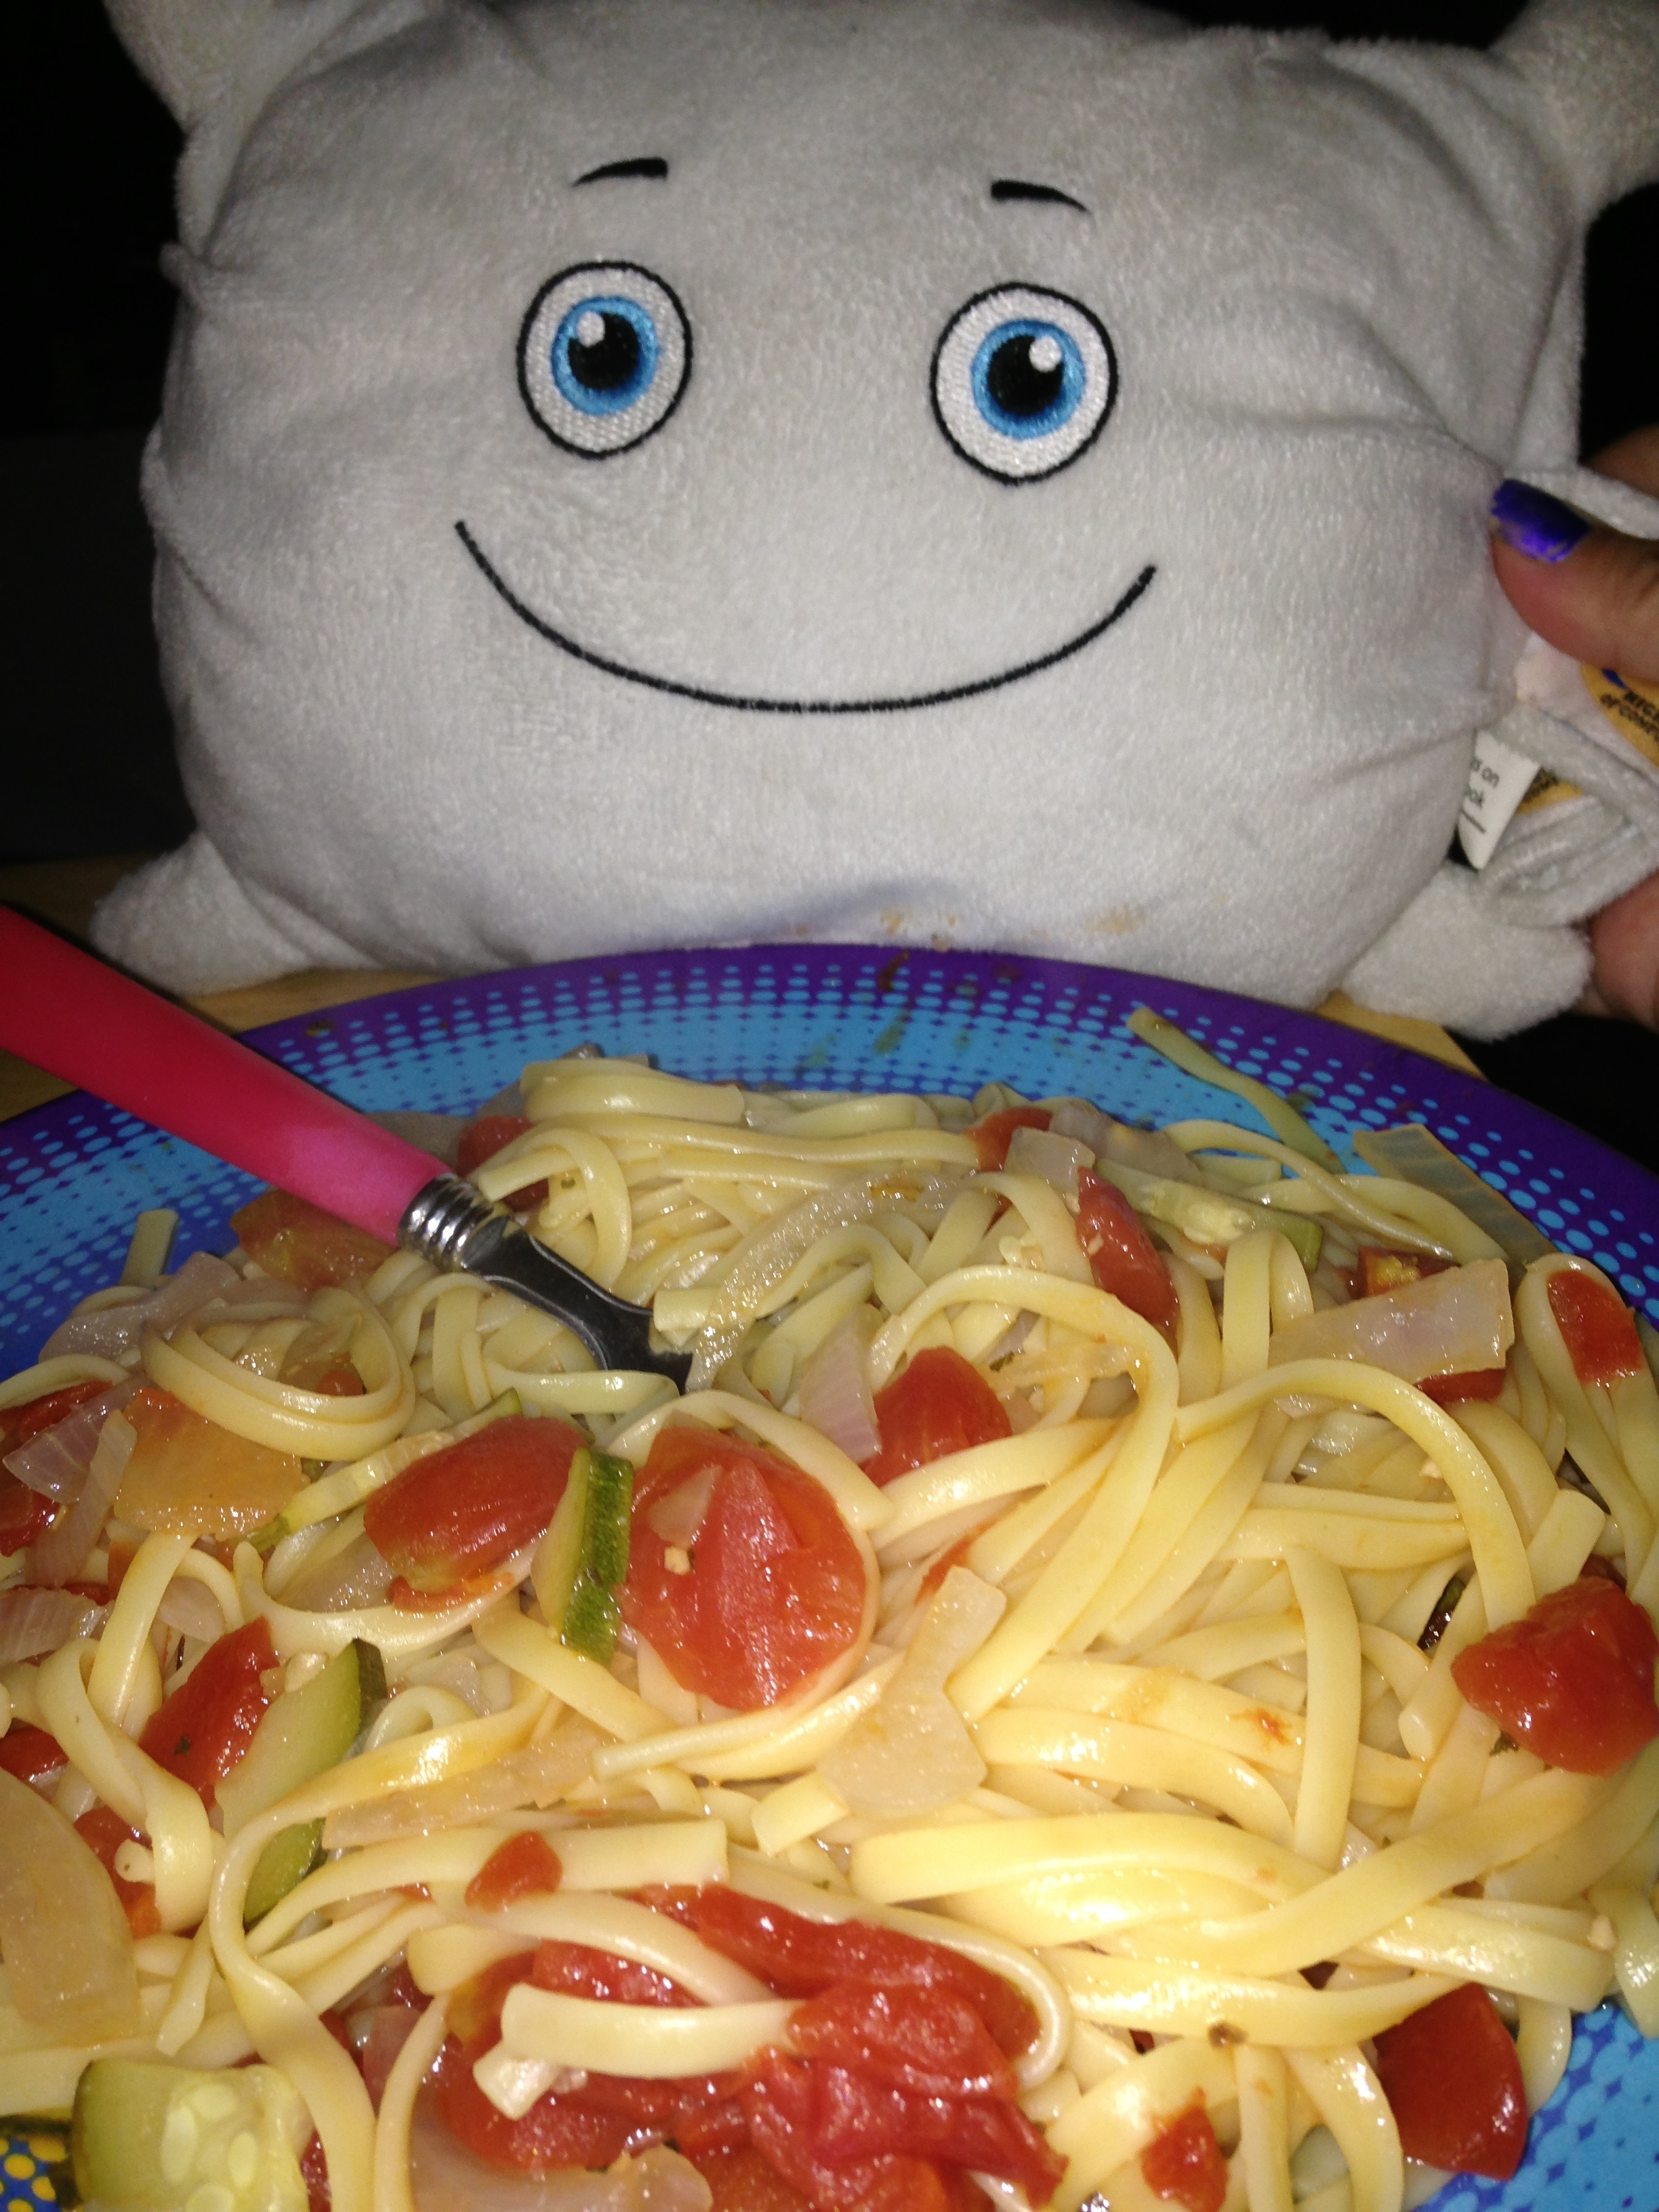 Pillow Featherbed did a great job making dinner!